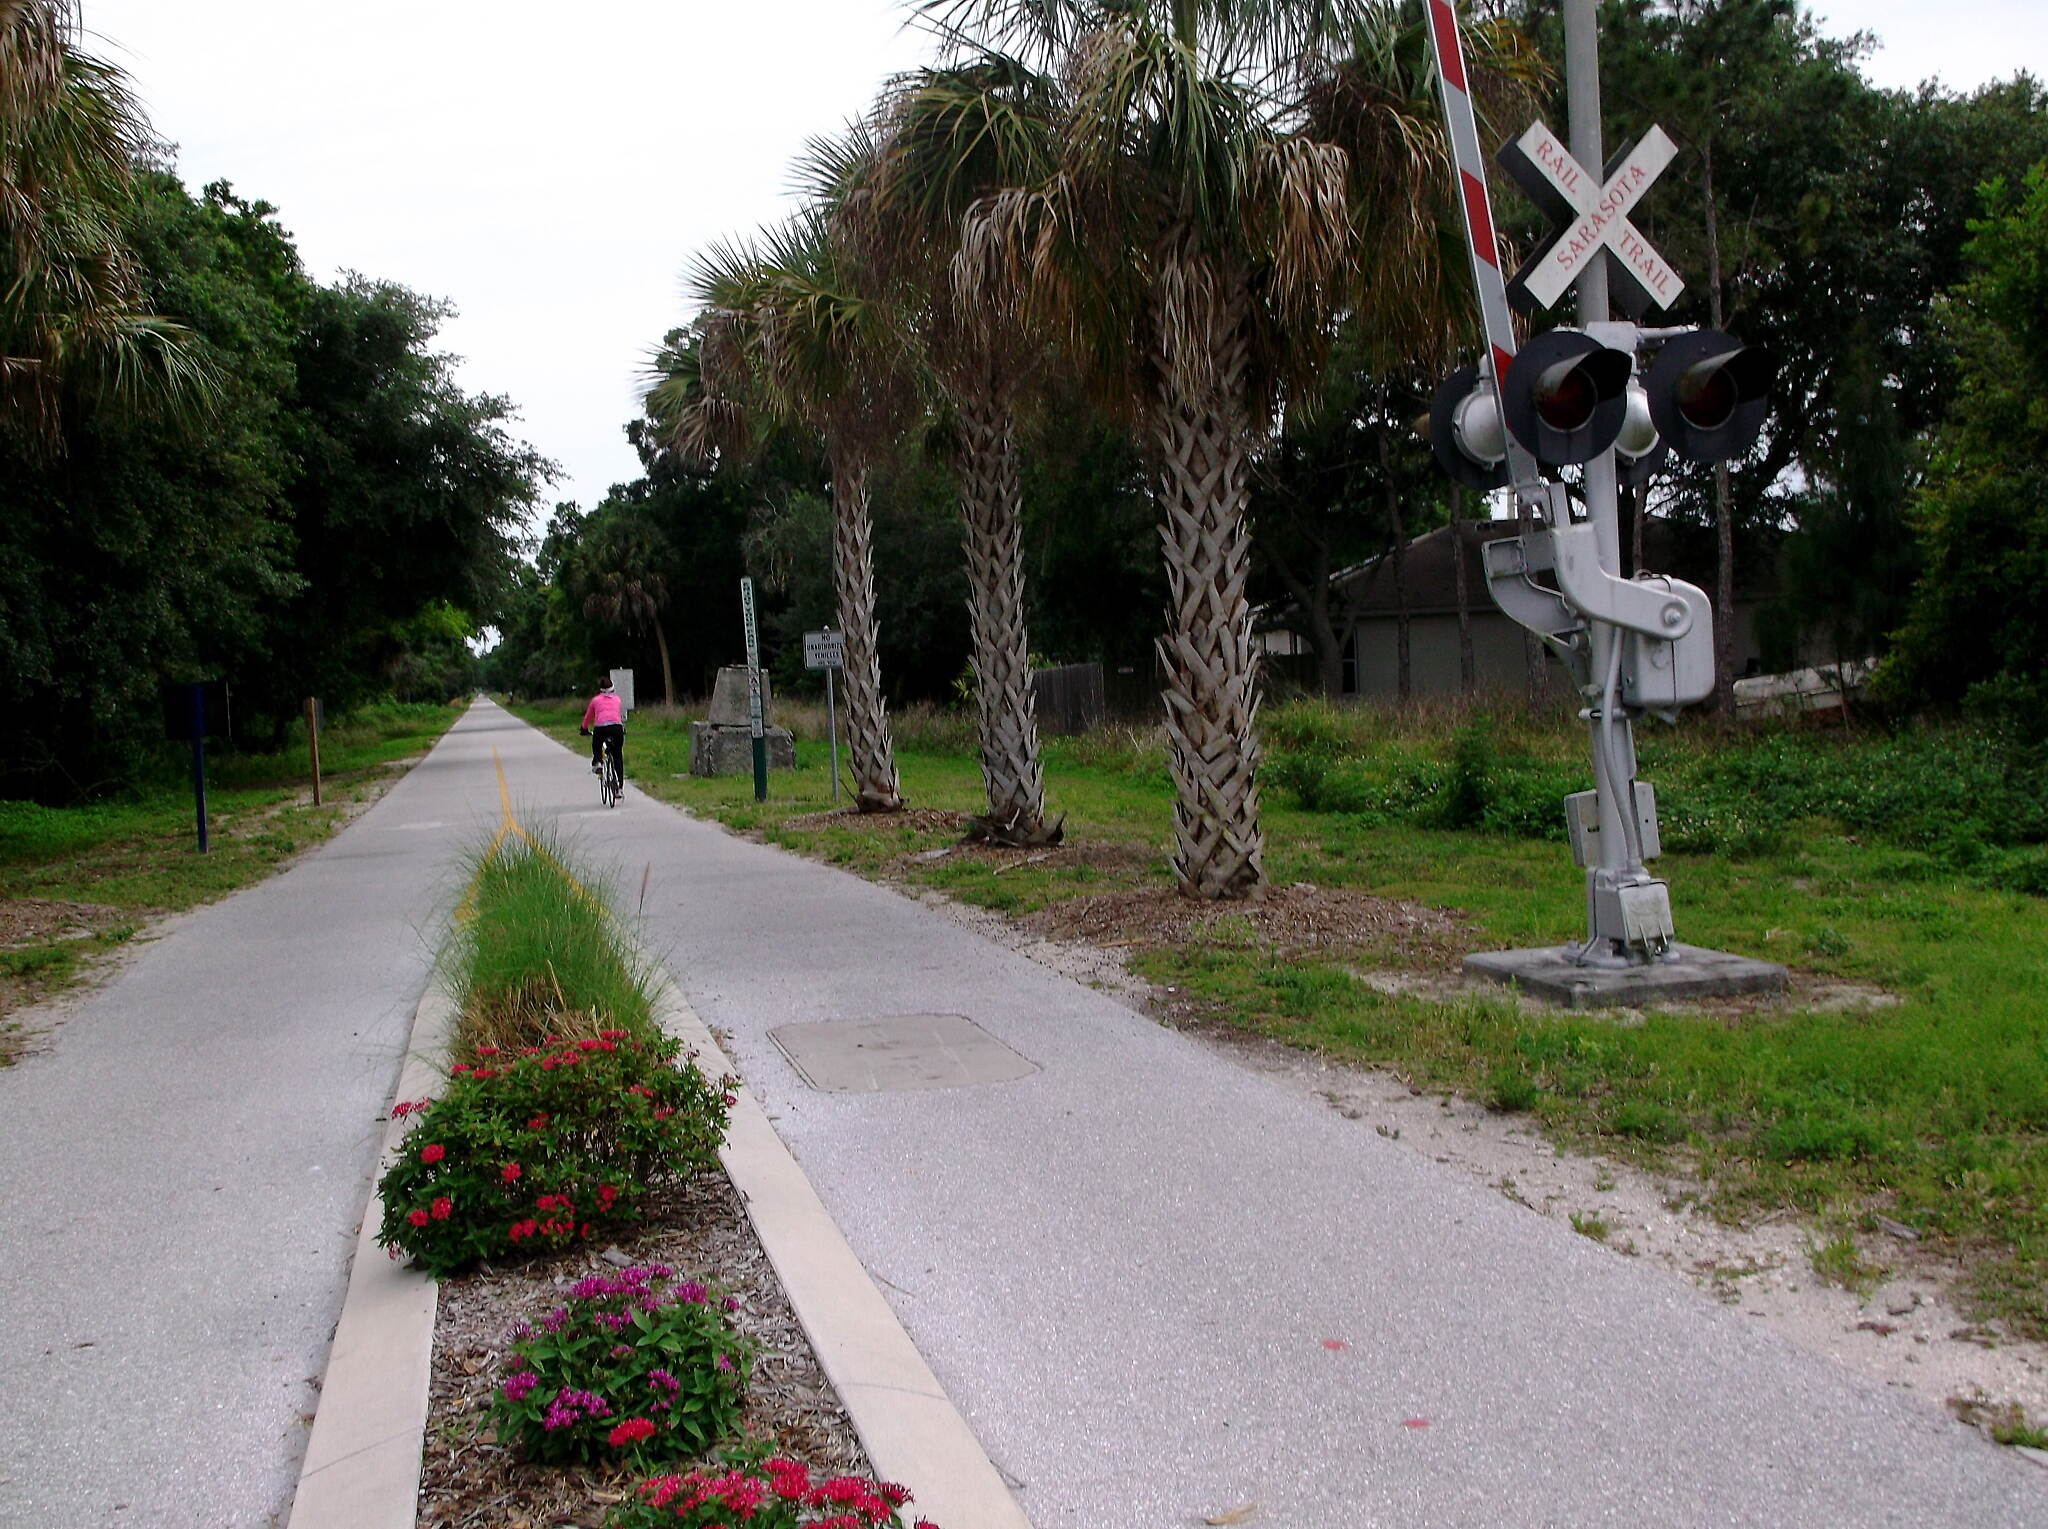 Legacy Trail (FL) Two Miles Out of Venice This is just after busy intersection crossing.